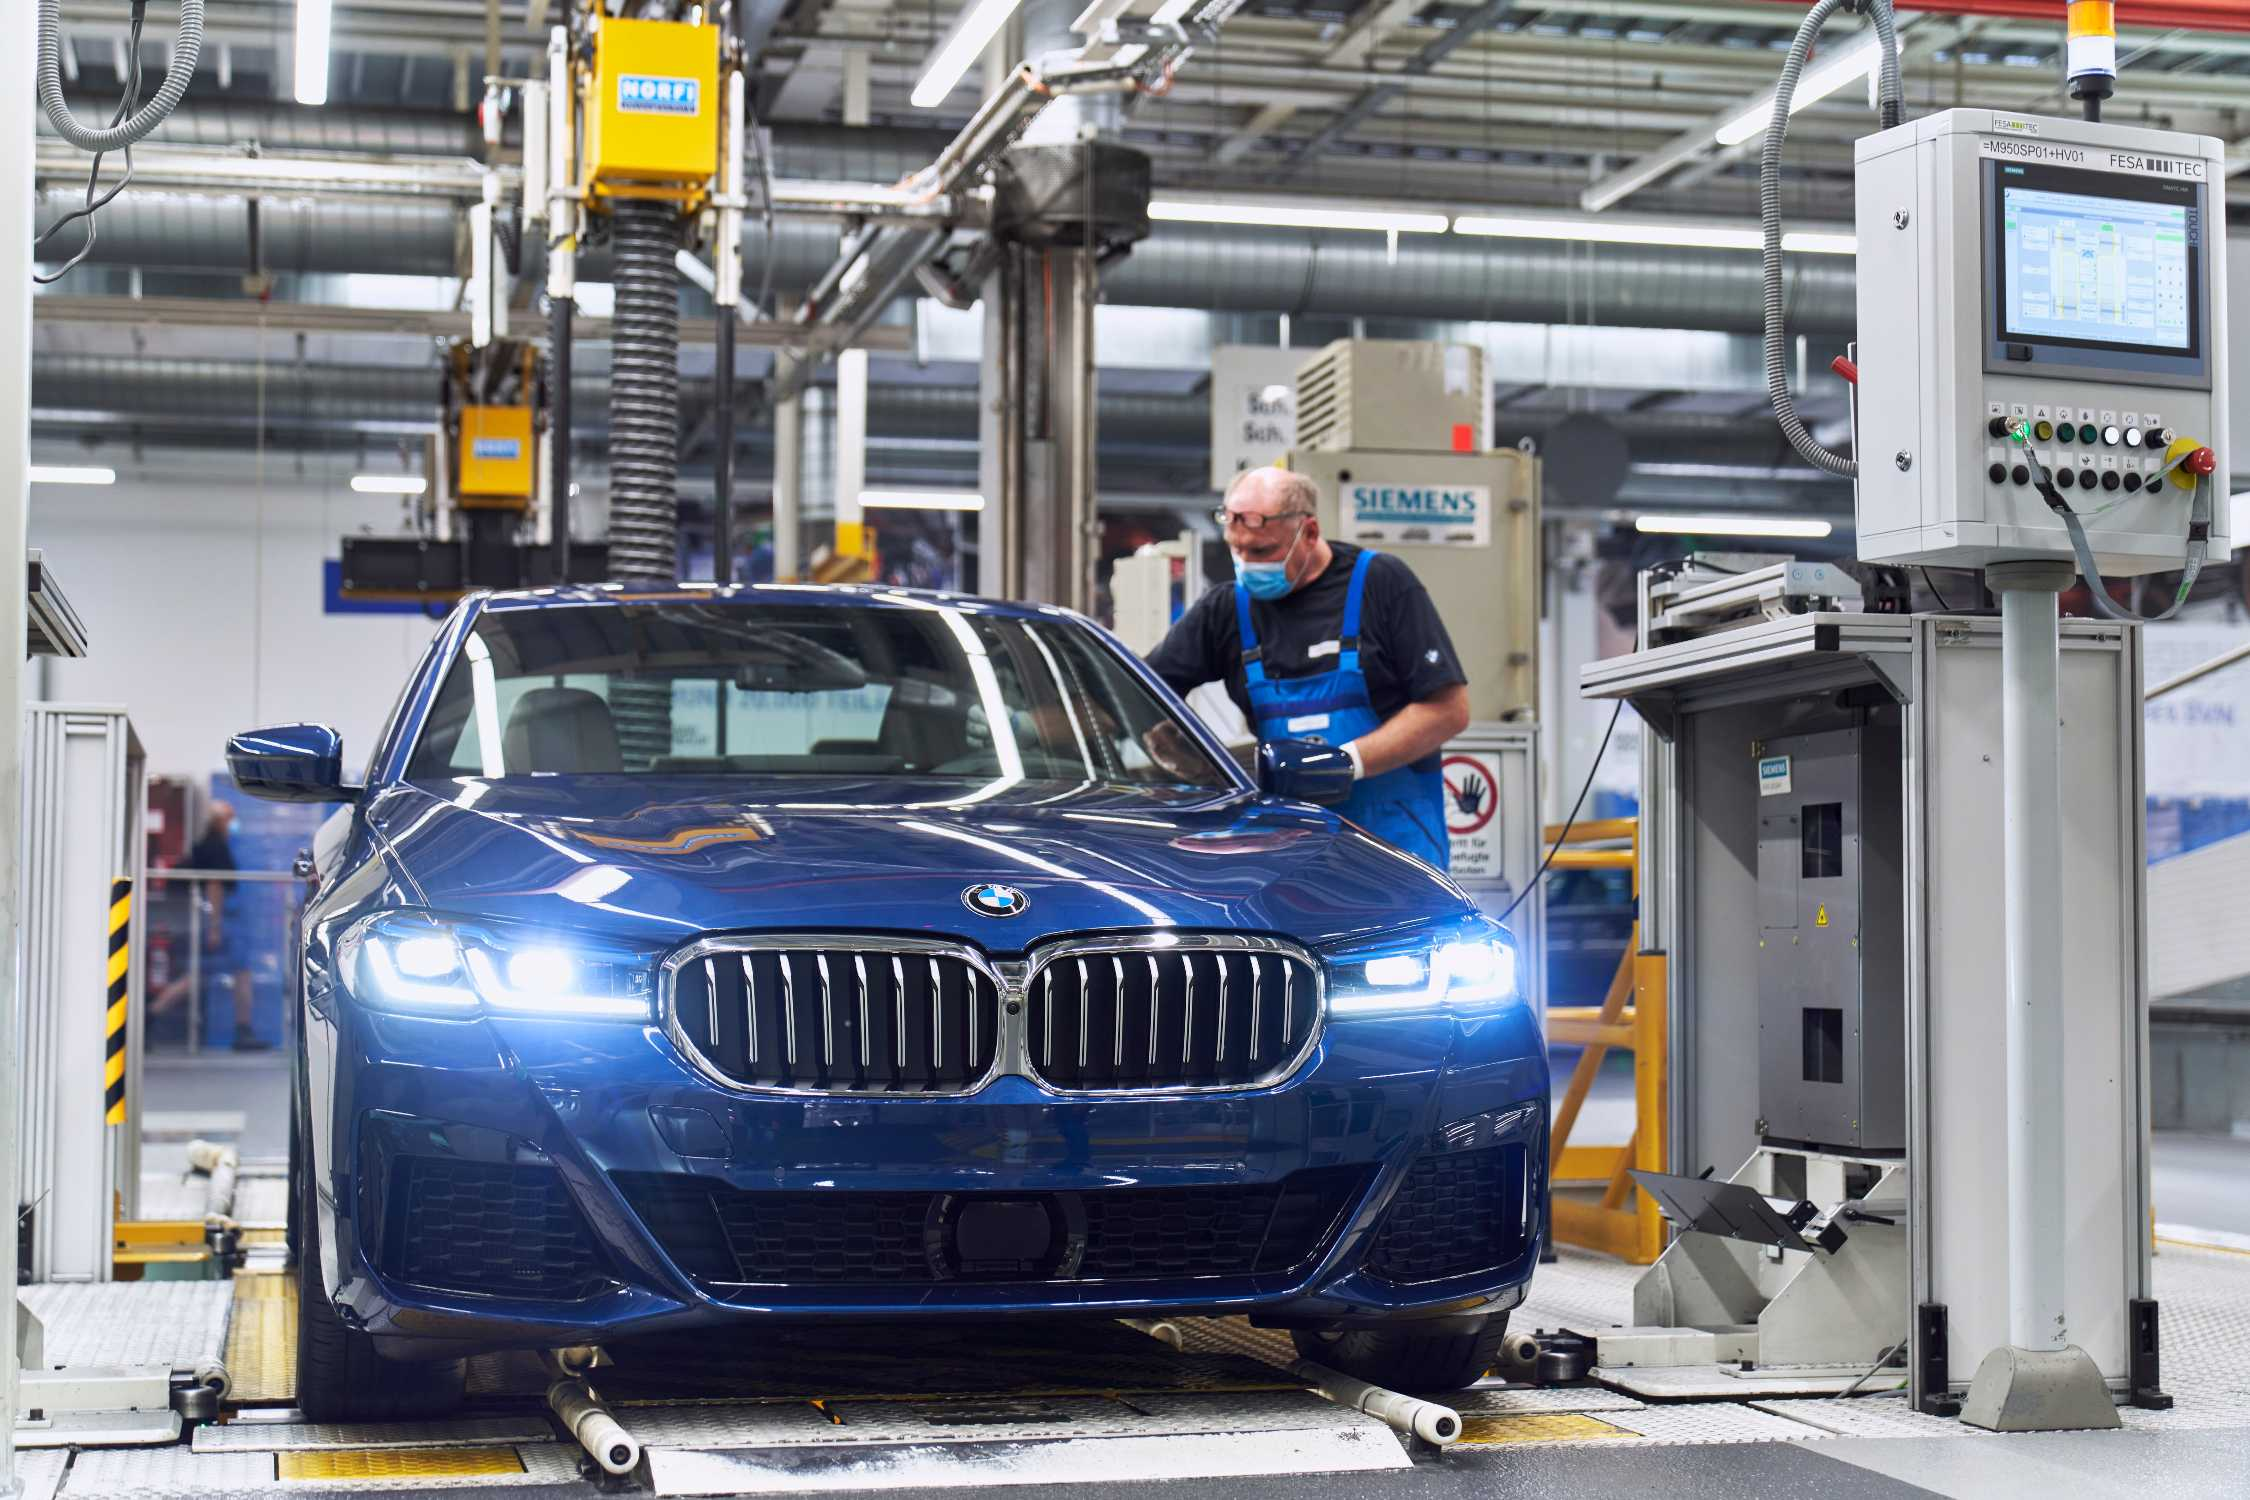 Start of production for the new BMW 5 Series Sedan at BMW Group Plant Dingolfing. (06/2020)